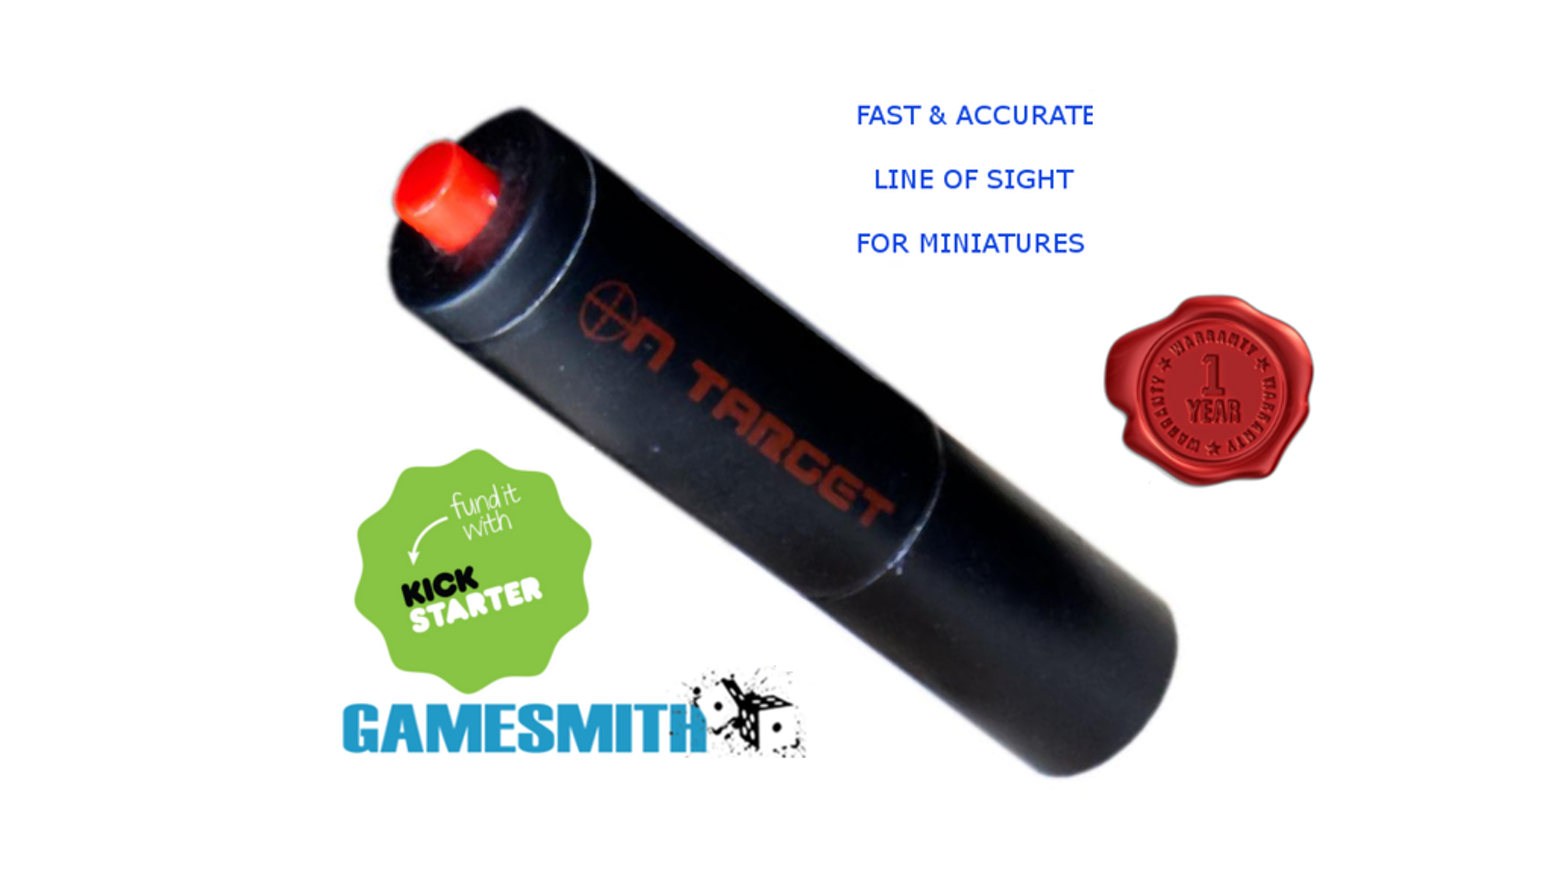 Gamesmith Green & Red Lasers for Miniatures & RPG Games- Fast, Accurate LoS, plus artful Dice Towers to store and roll all your dice!